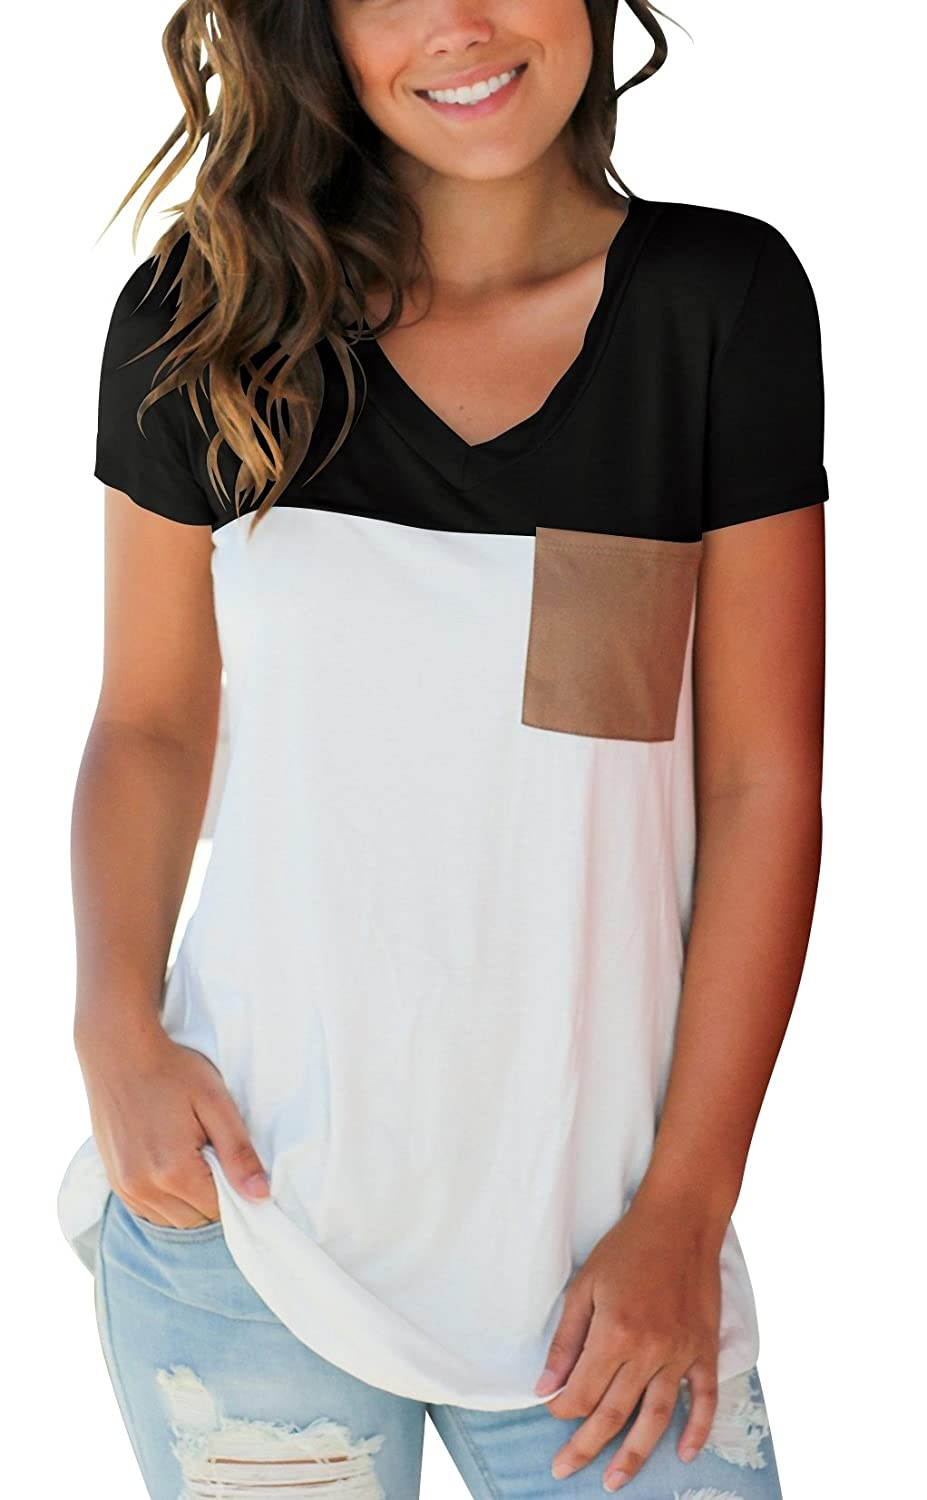 3078a324632 SAMPEEL Women's Basic V Neck T Shirt with Suede Pocket S-XXL at Amazon  Women's Clothing store: